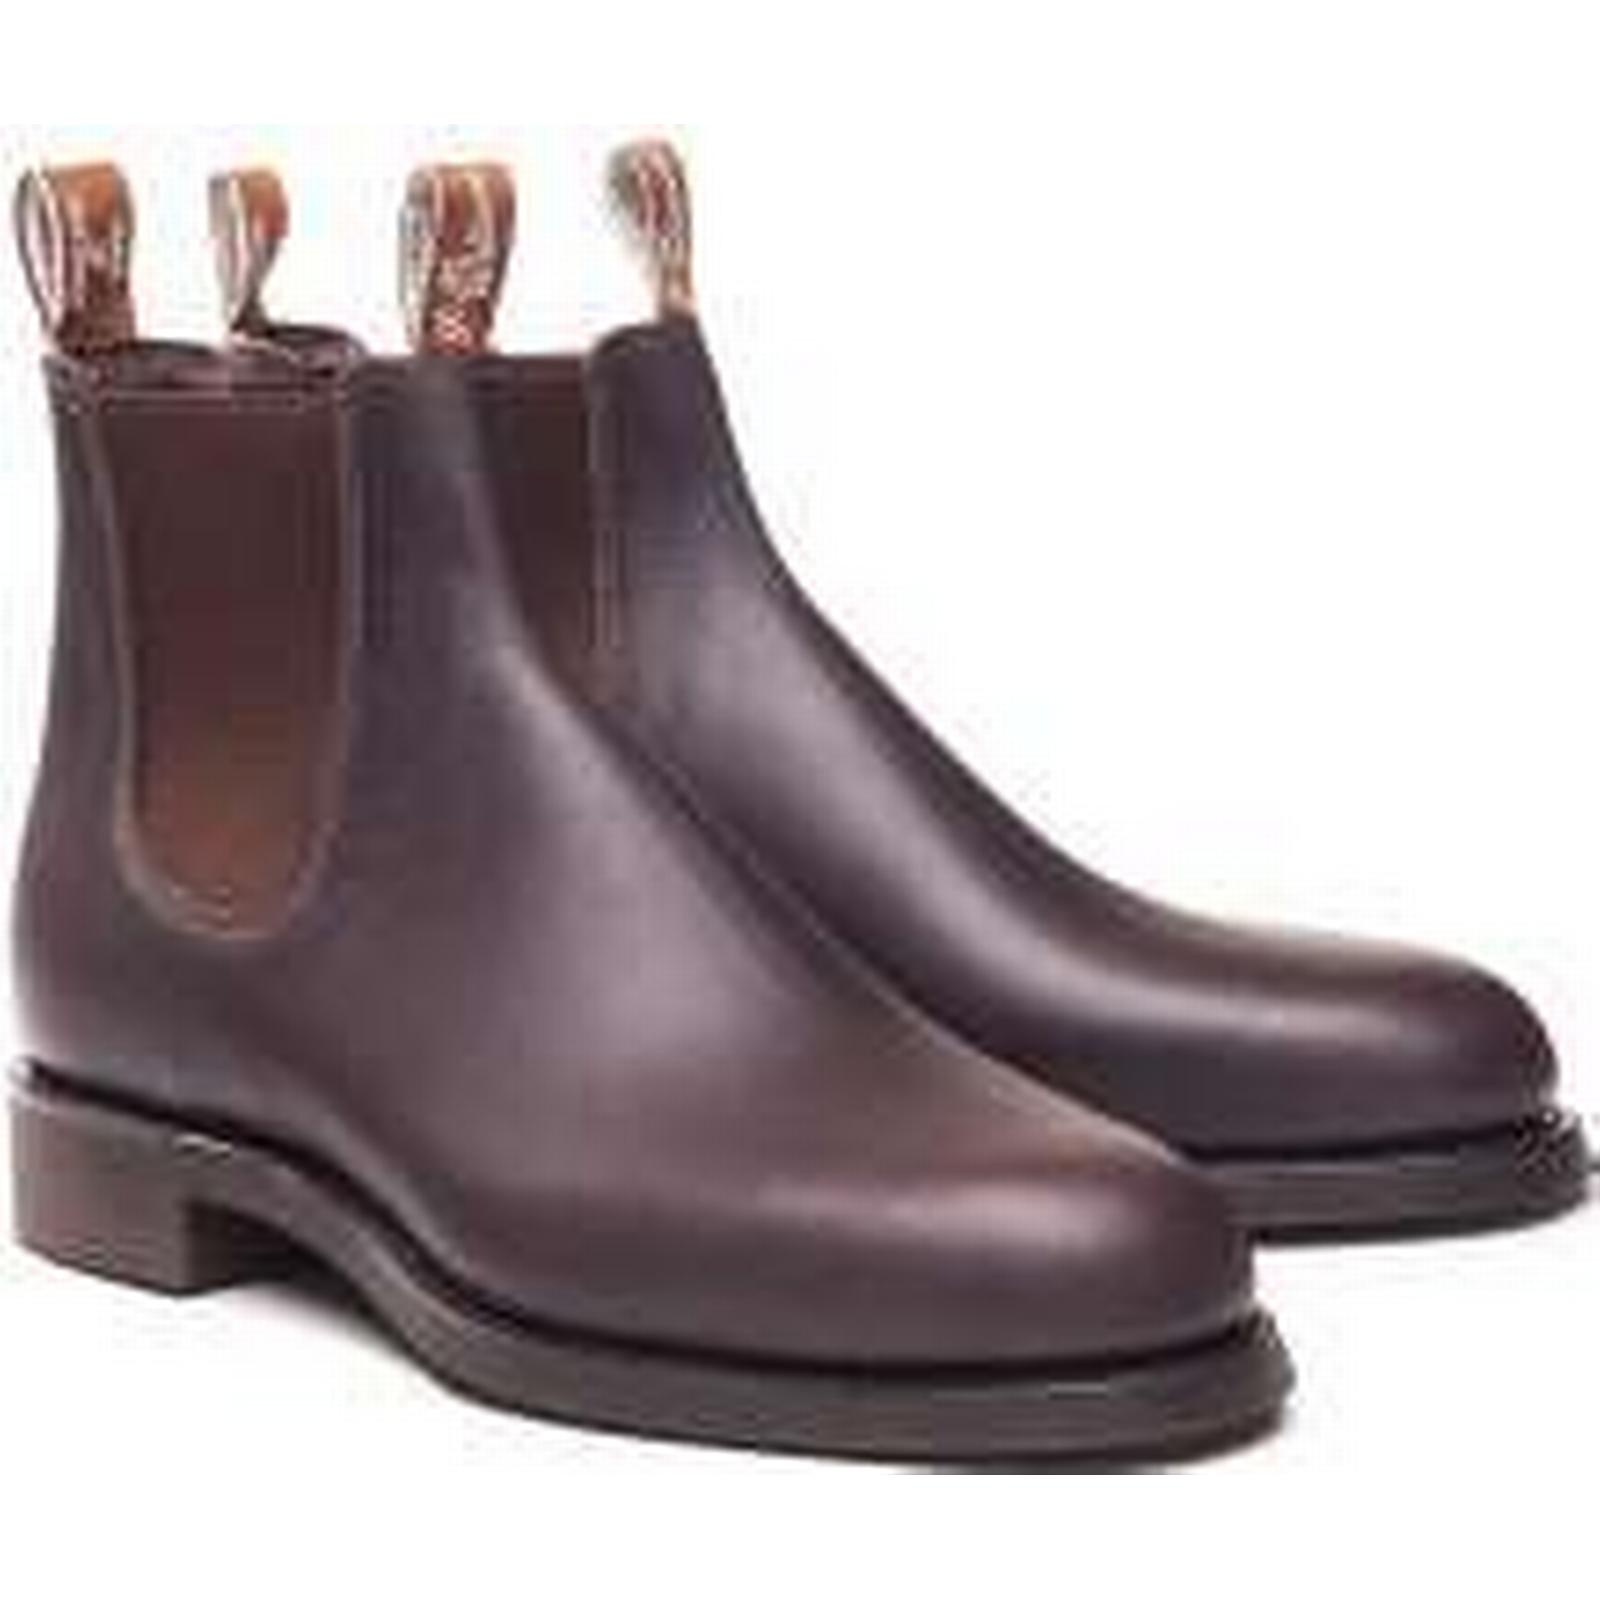 R.M. Williams Wide Gardener Boots, Brown Wide Williams H Fit, UK8 163c72